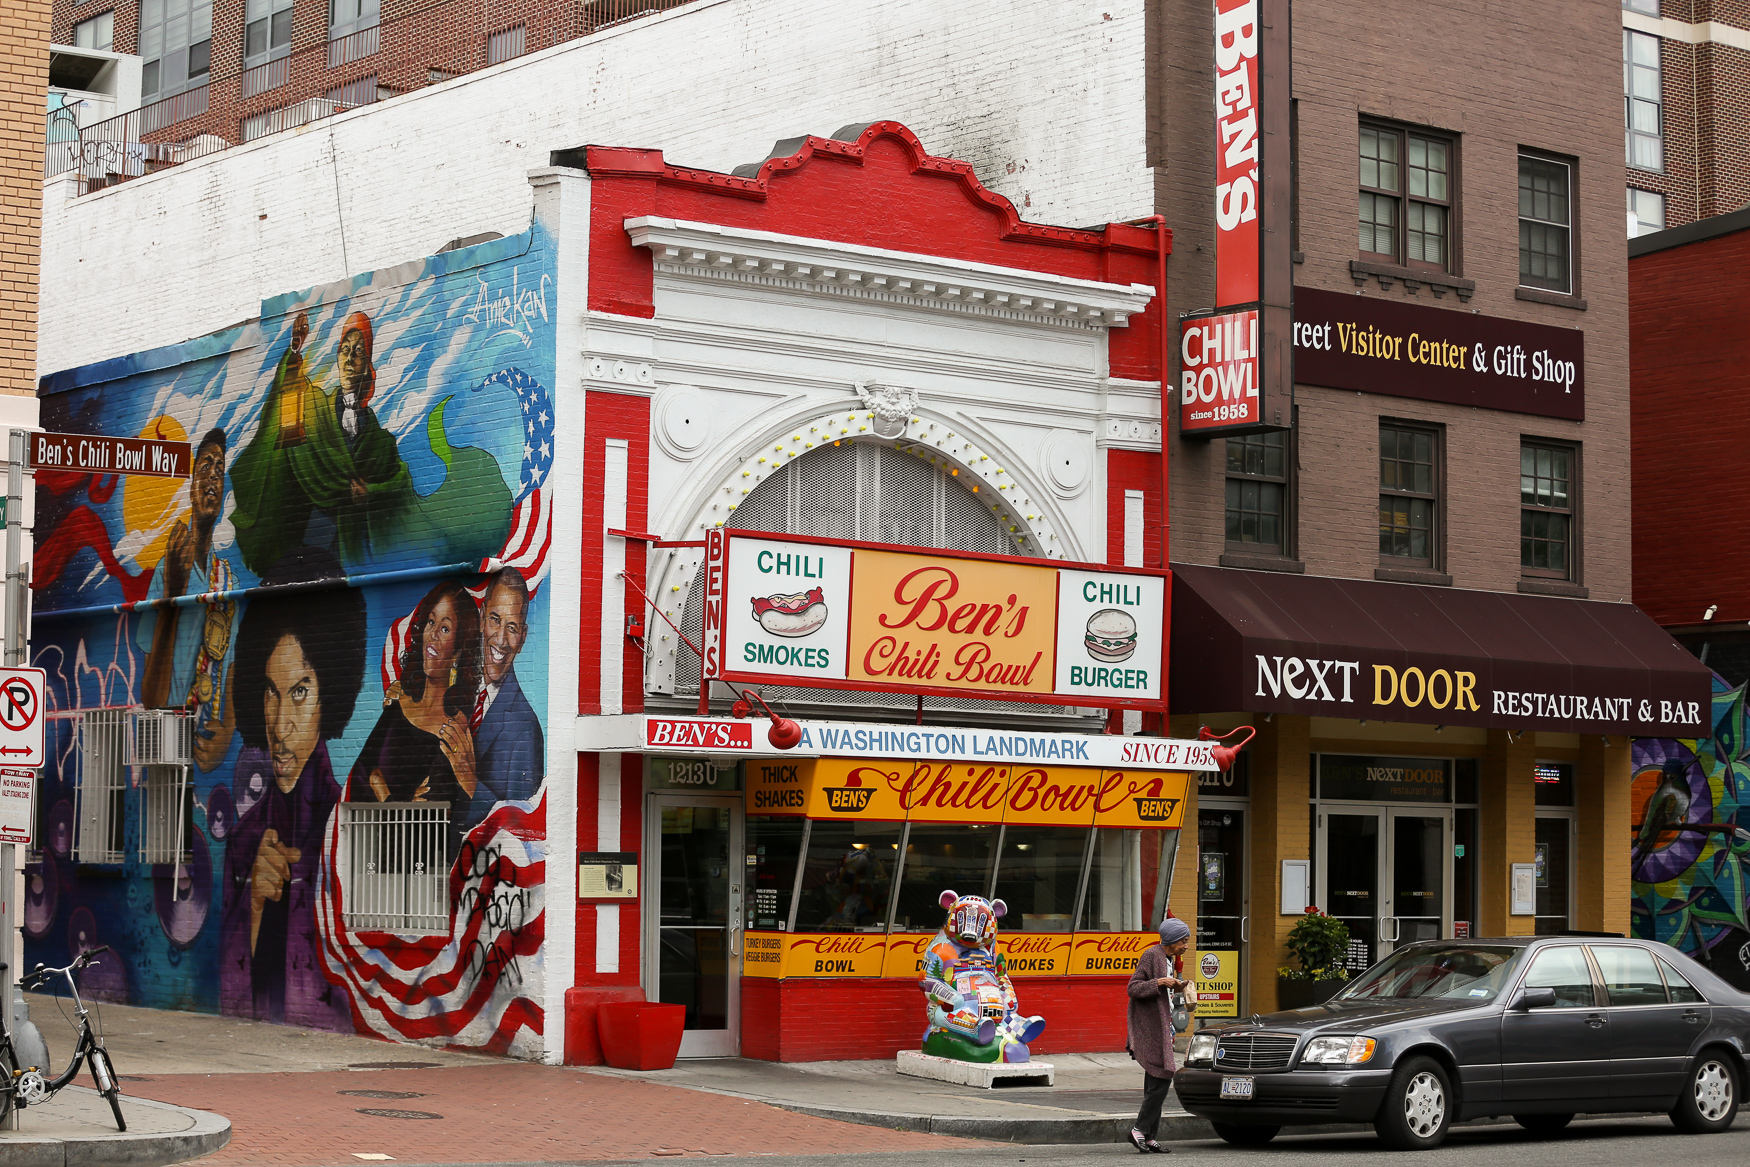 Fun fact! Ben's Chili Bowl was opened on August 22, 1958.{&amp;nbsp;}<p></p>